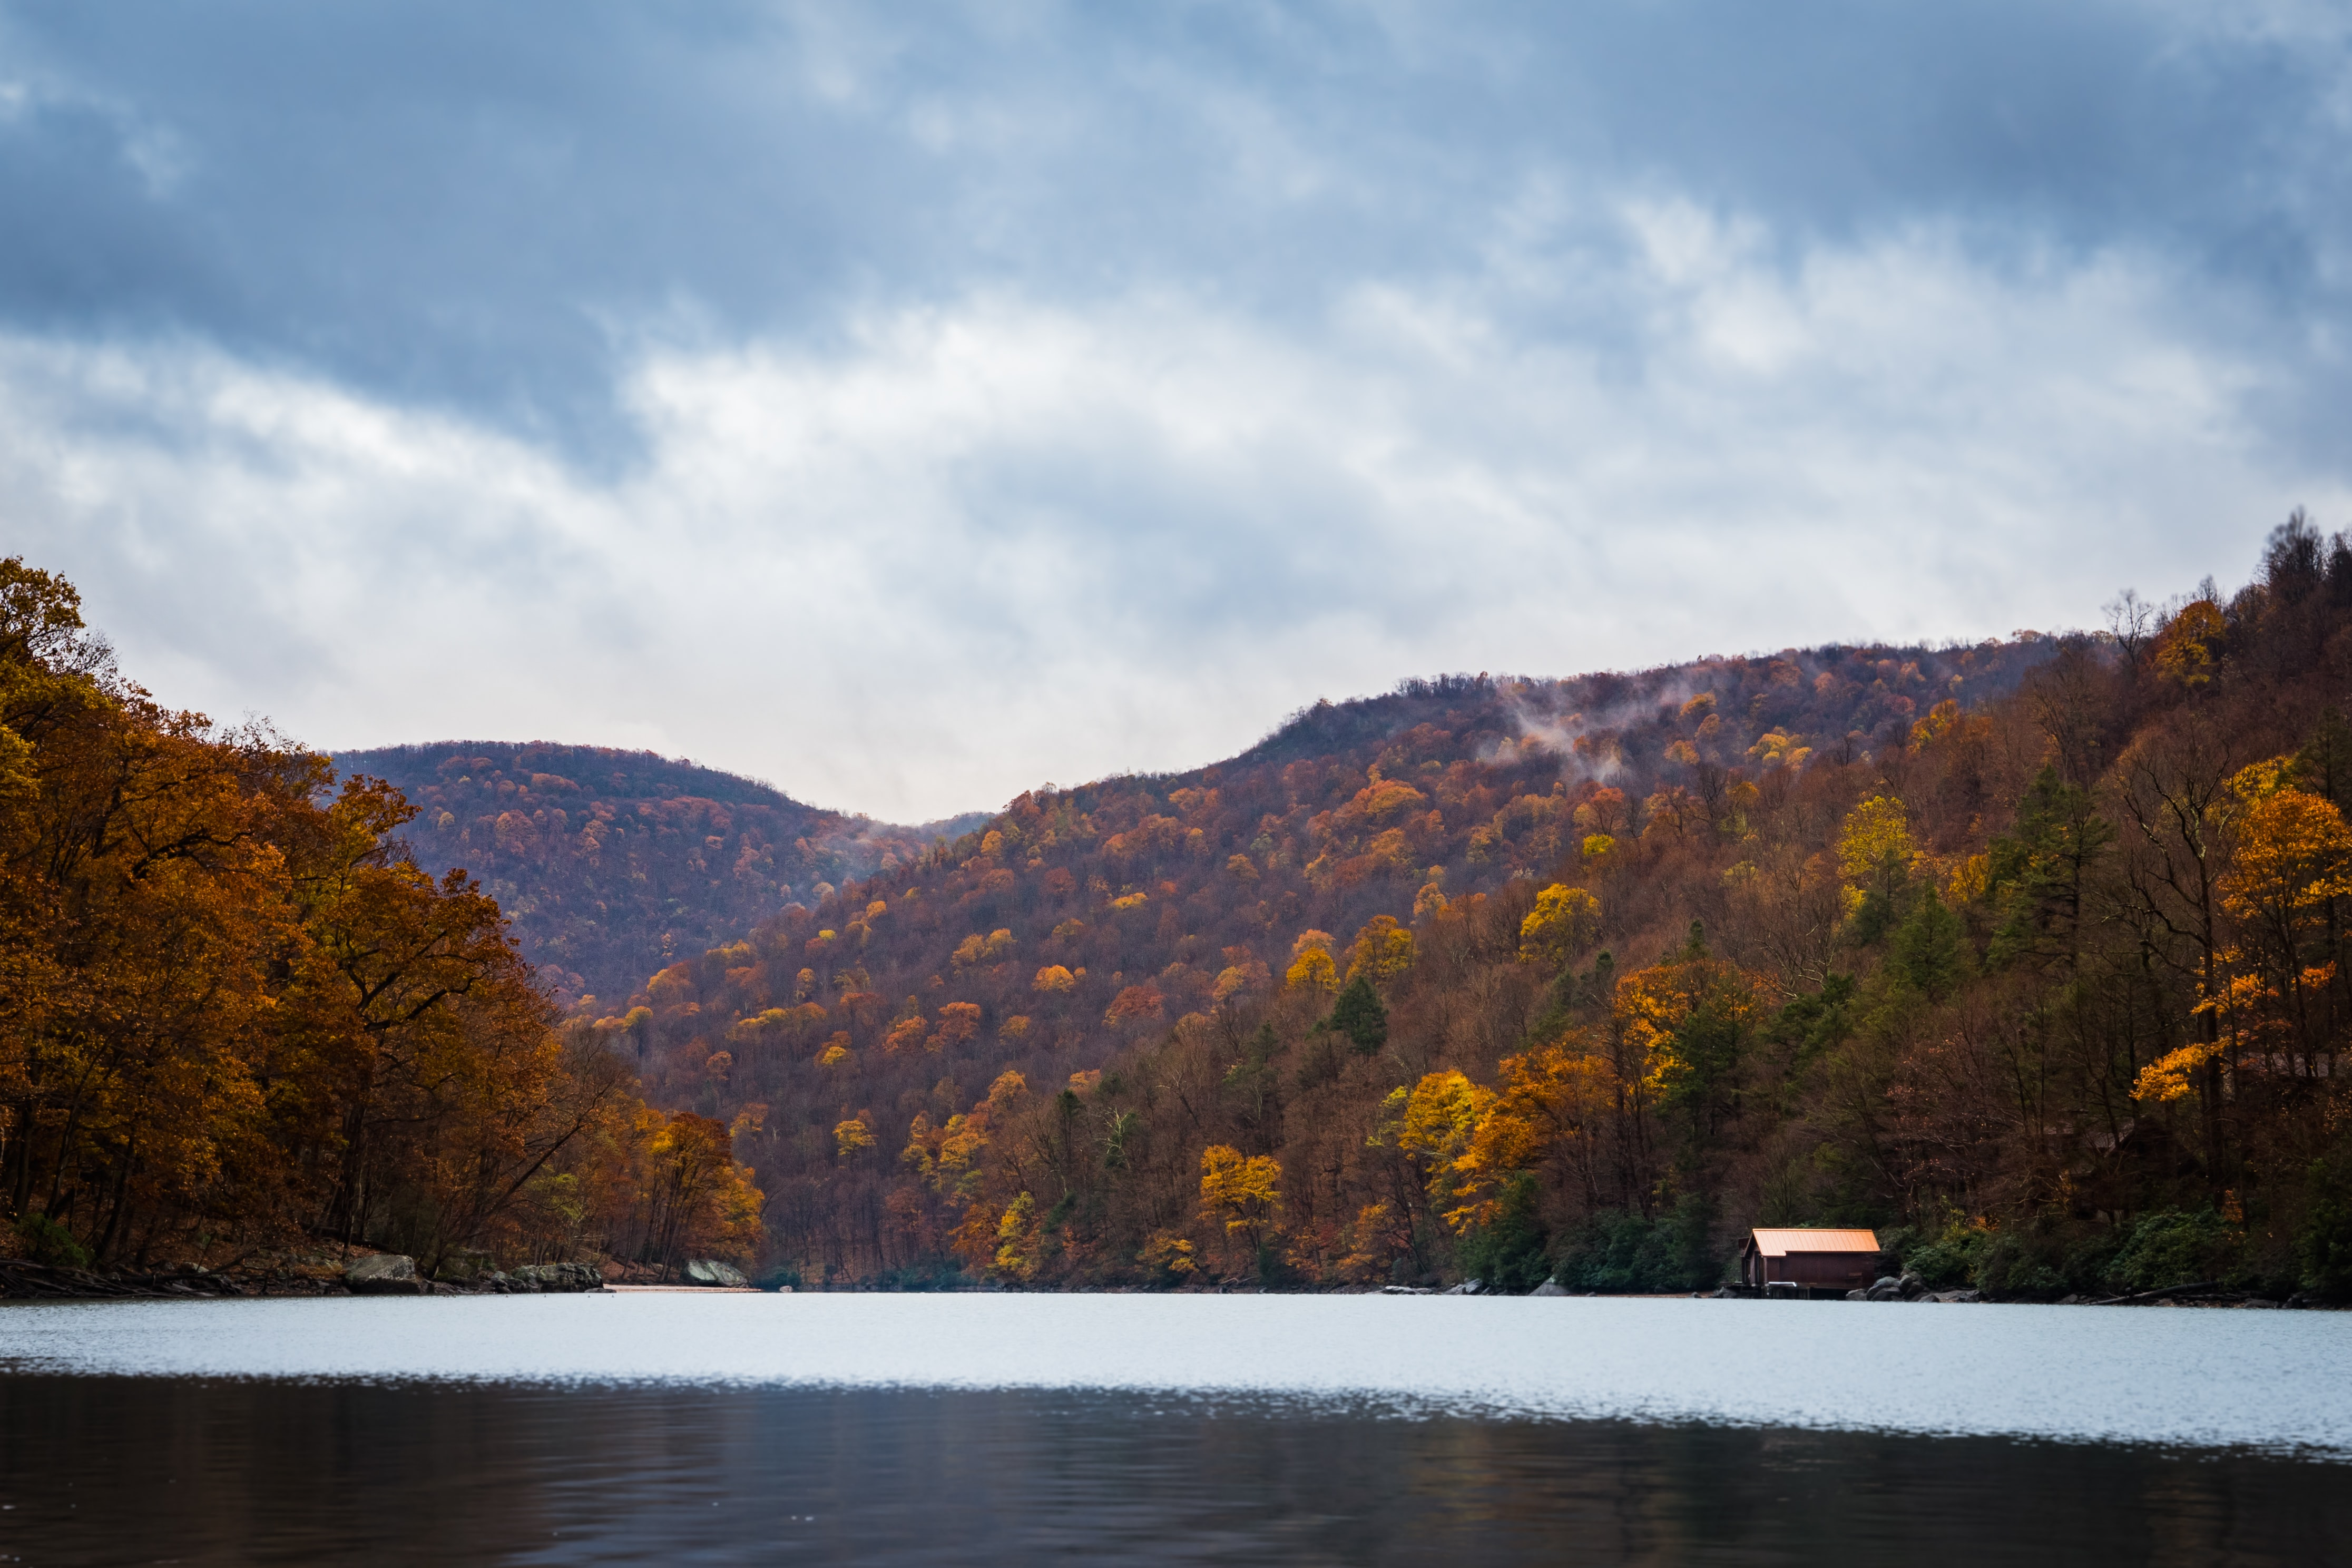 The half-frozen Cheat Lake with a boathouse and orange-leaved trees on its shore